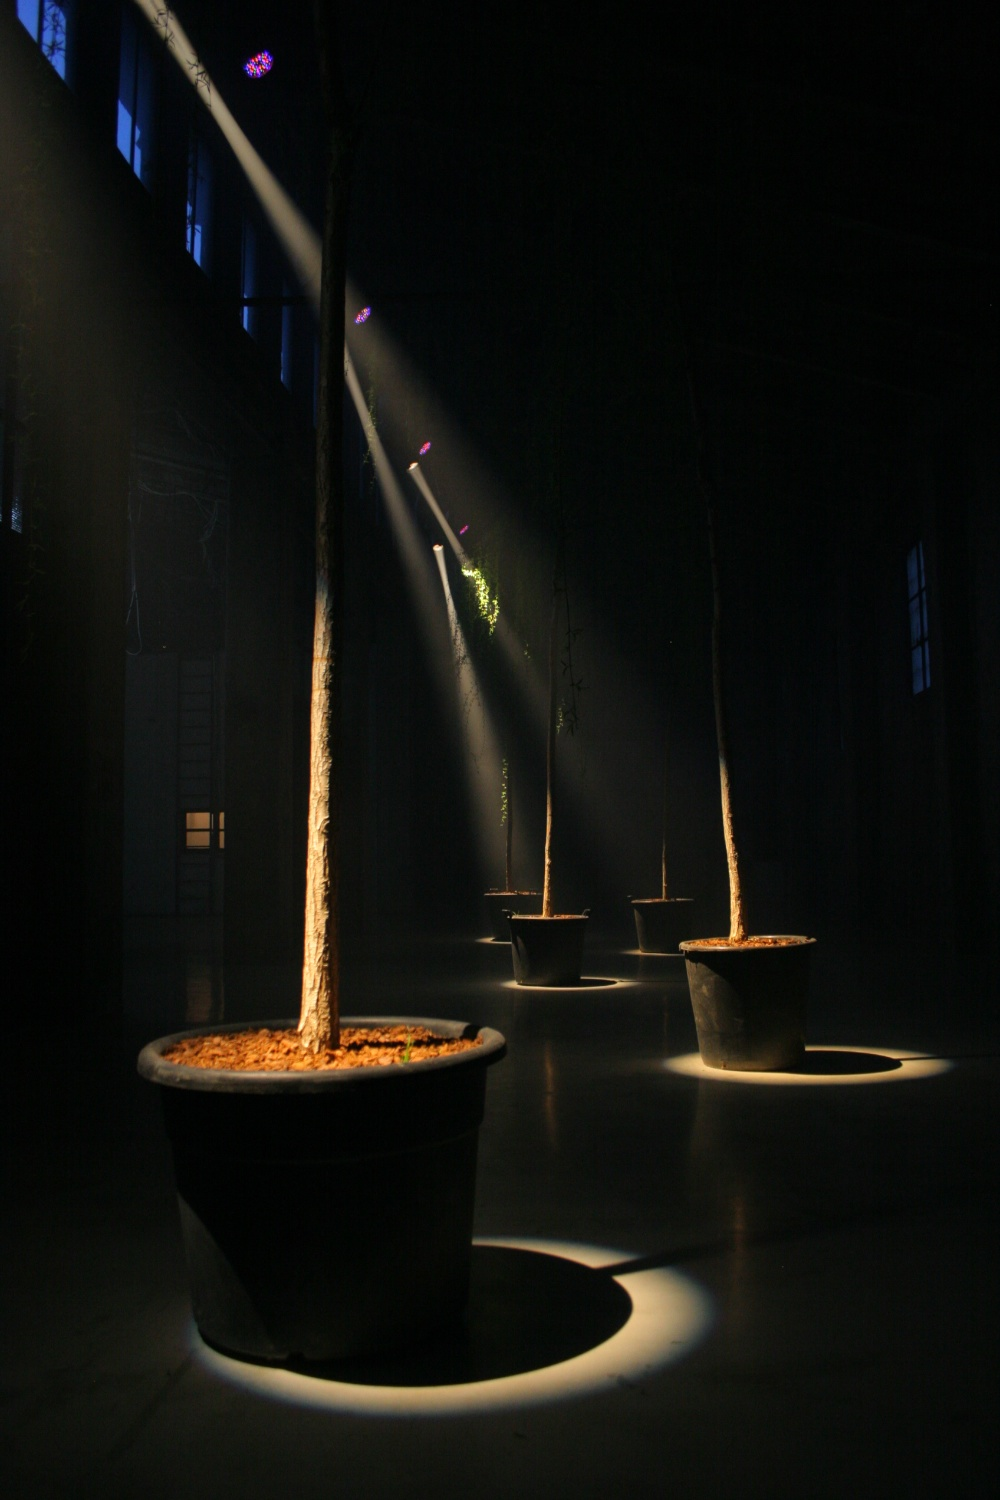 with light regards,